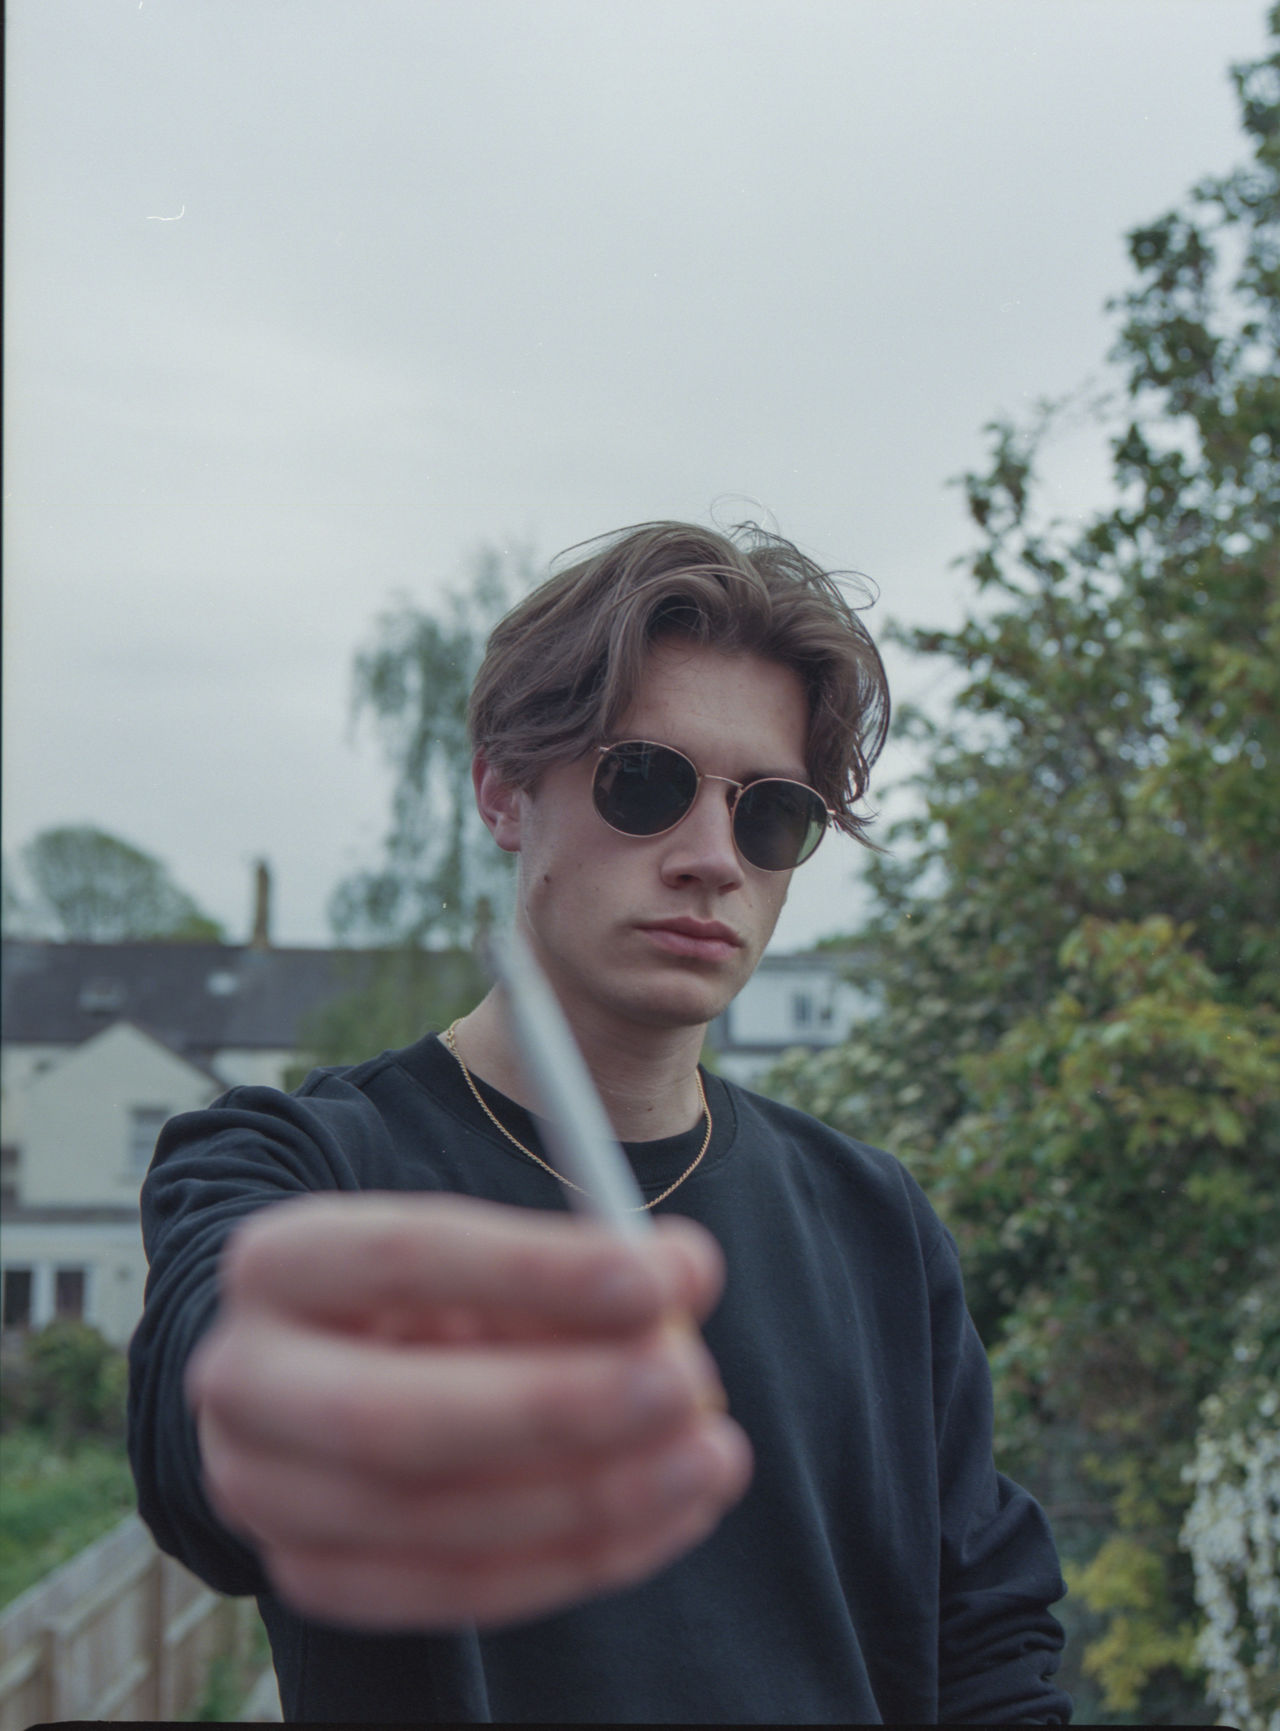 PORTRAIT OF YOUNG MAN WEARING SUNGLASSES STANDING AGAINST WALL